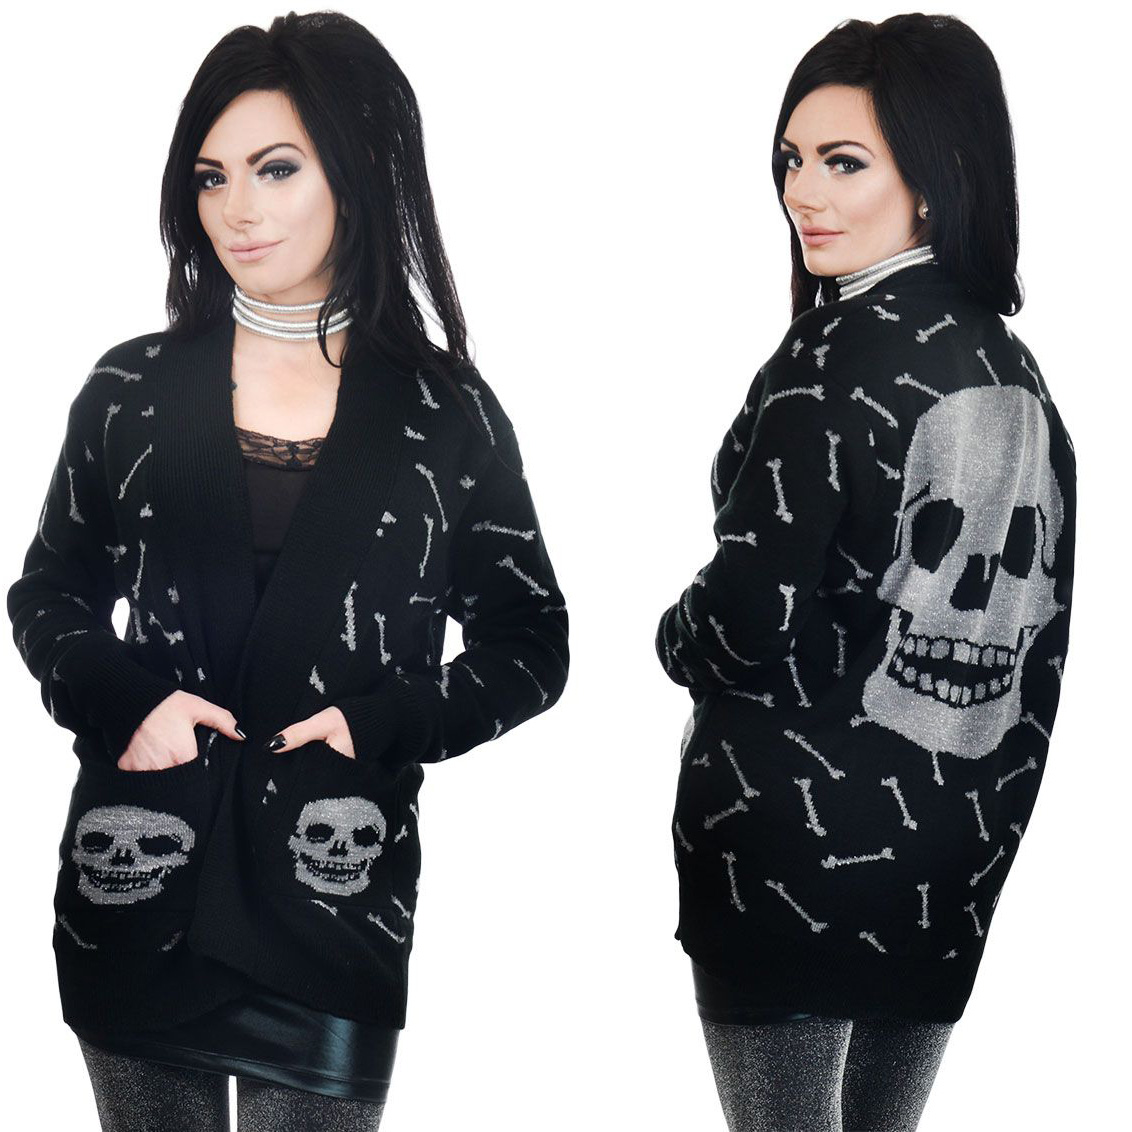 Glitter Bones Long Cardigan by Too Fast / Rat Baby Clothing - SALE sz 2X only